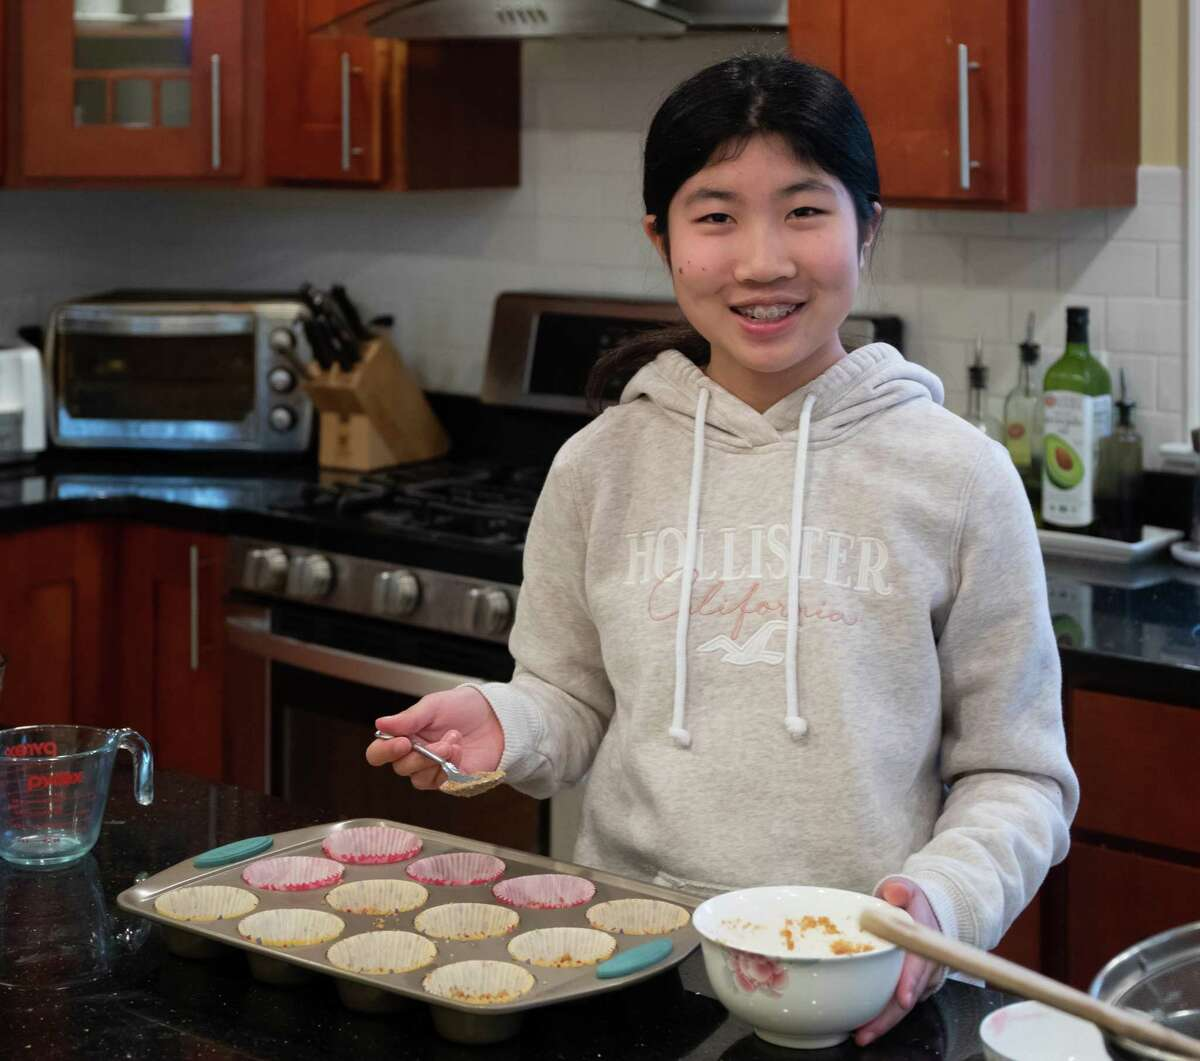 Annabelle Zheng, a seventh grader at Middlebrook School, bakes mini raspberry cheesecakes at home in Wilton, Ct. May 2020